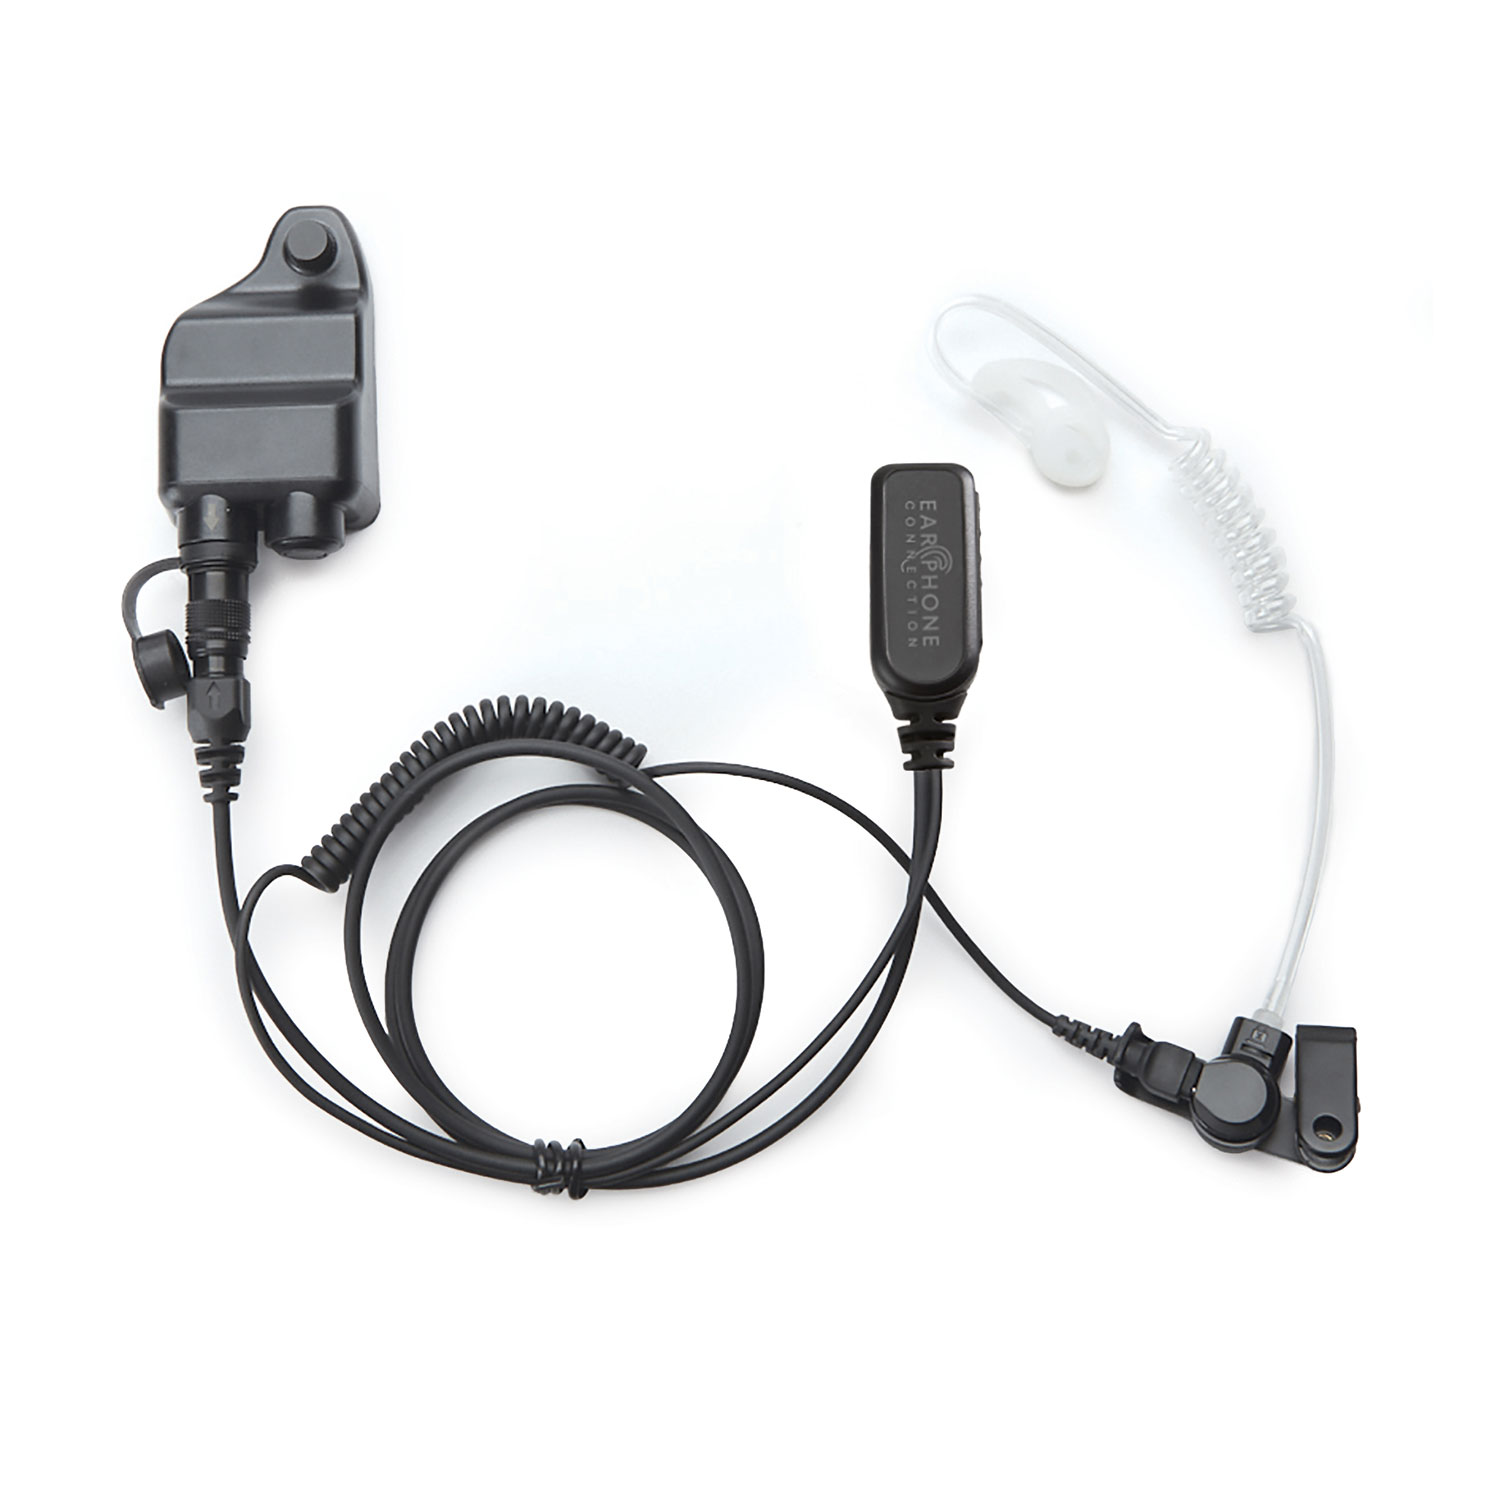 Ear Phone Connection Hawk EP1328 EC Easy Connect Lapel Micro